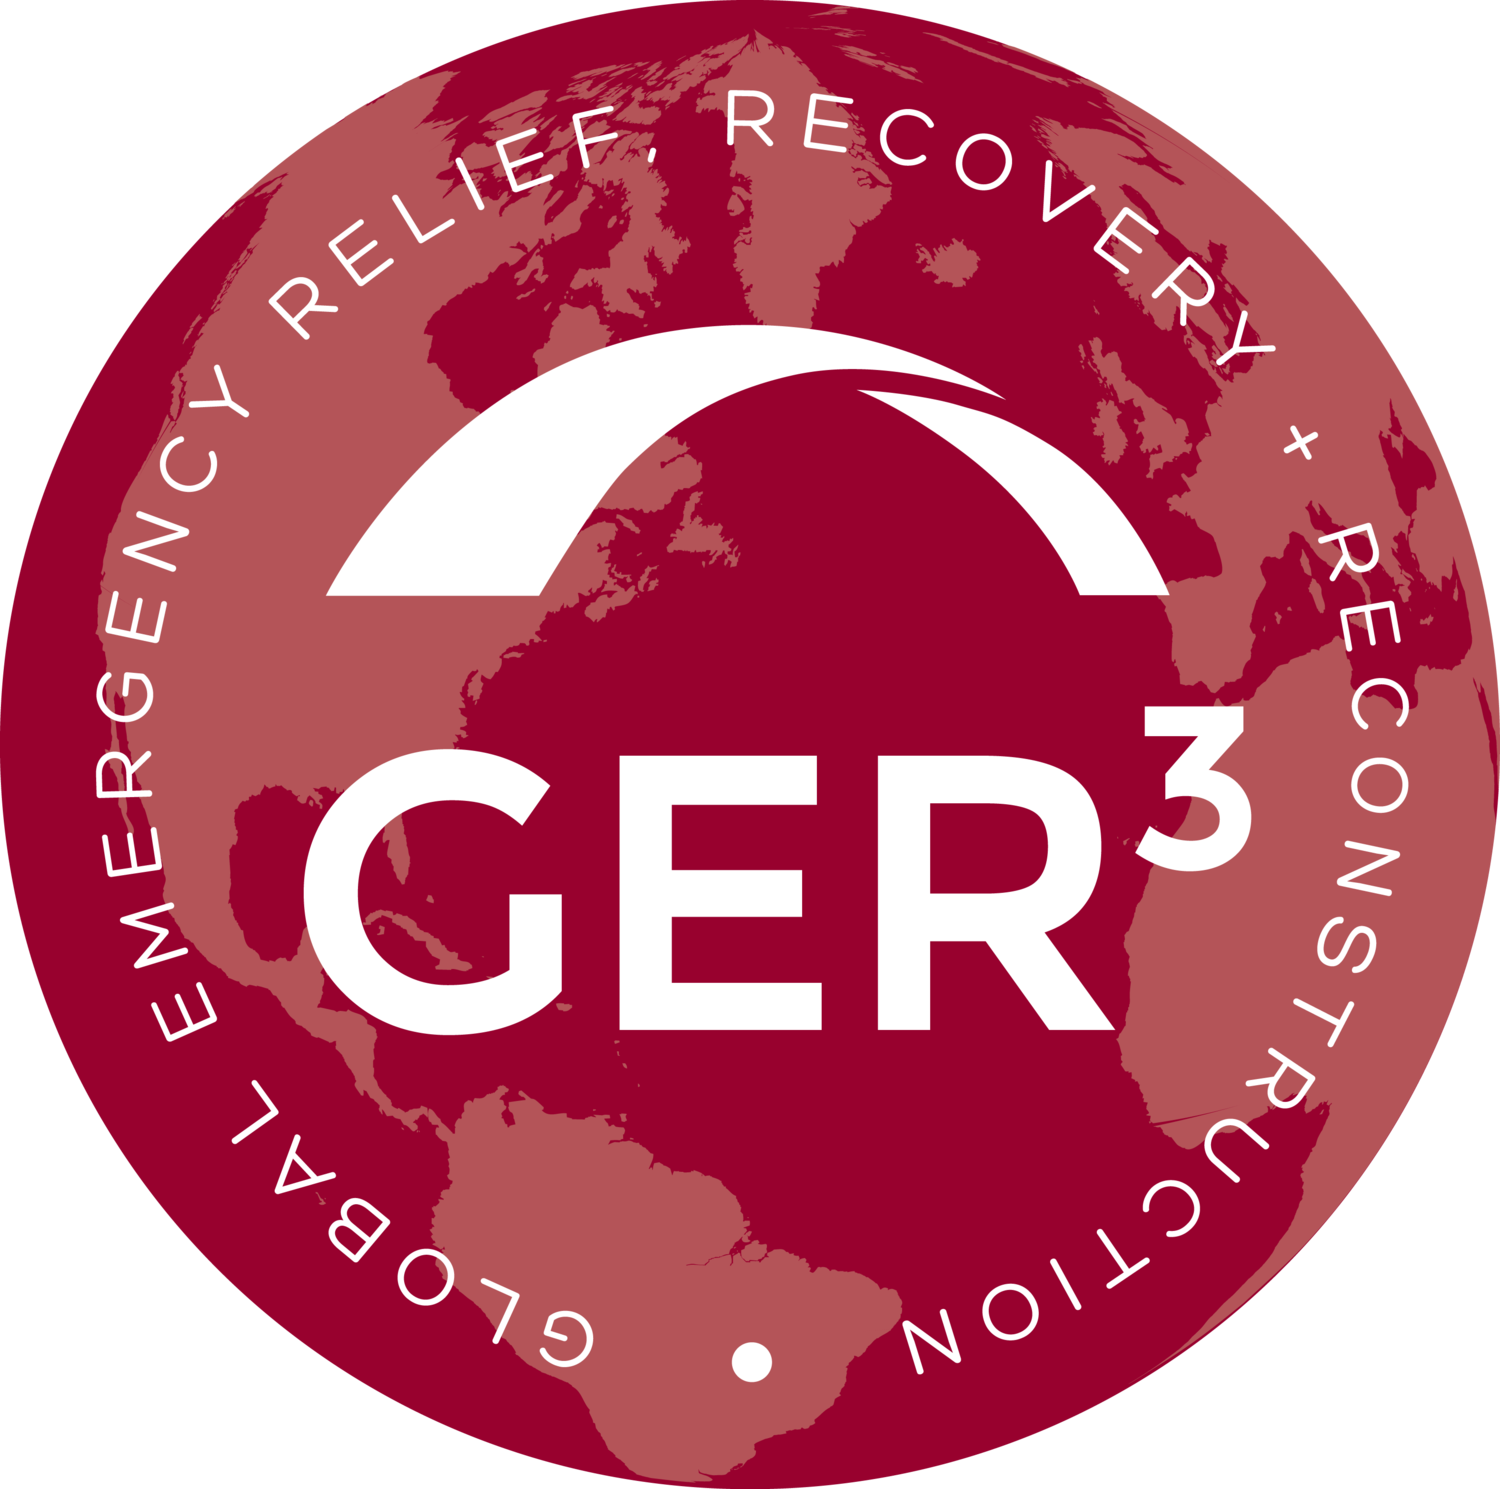 Global Emergency Relief Recovery & Reconstruction